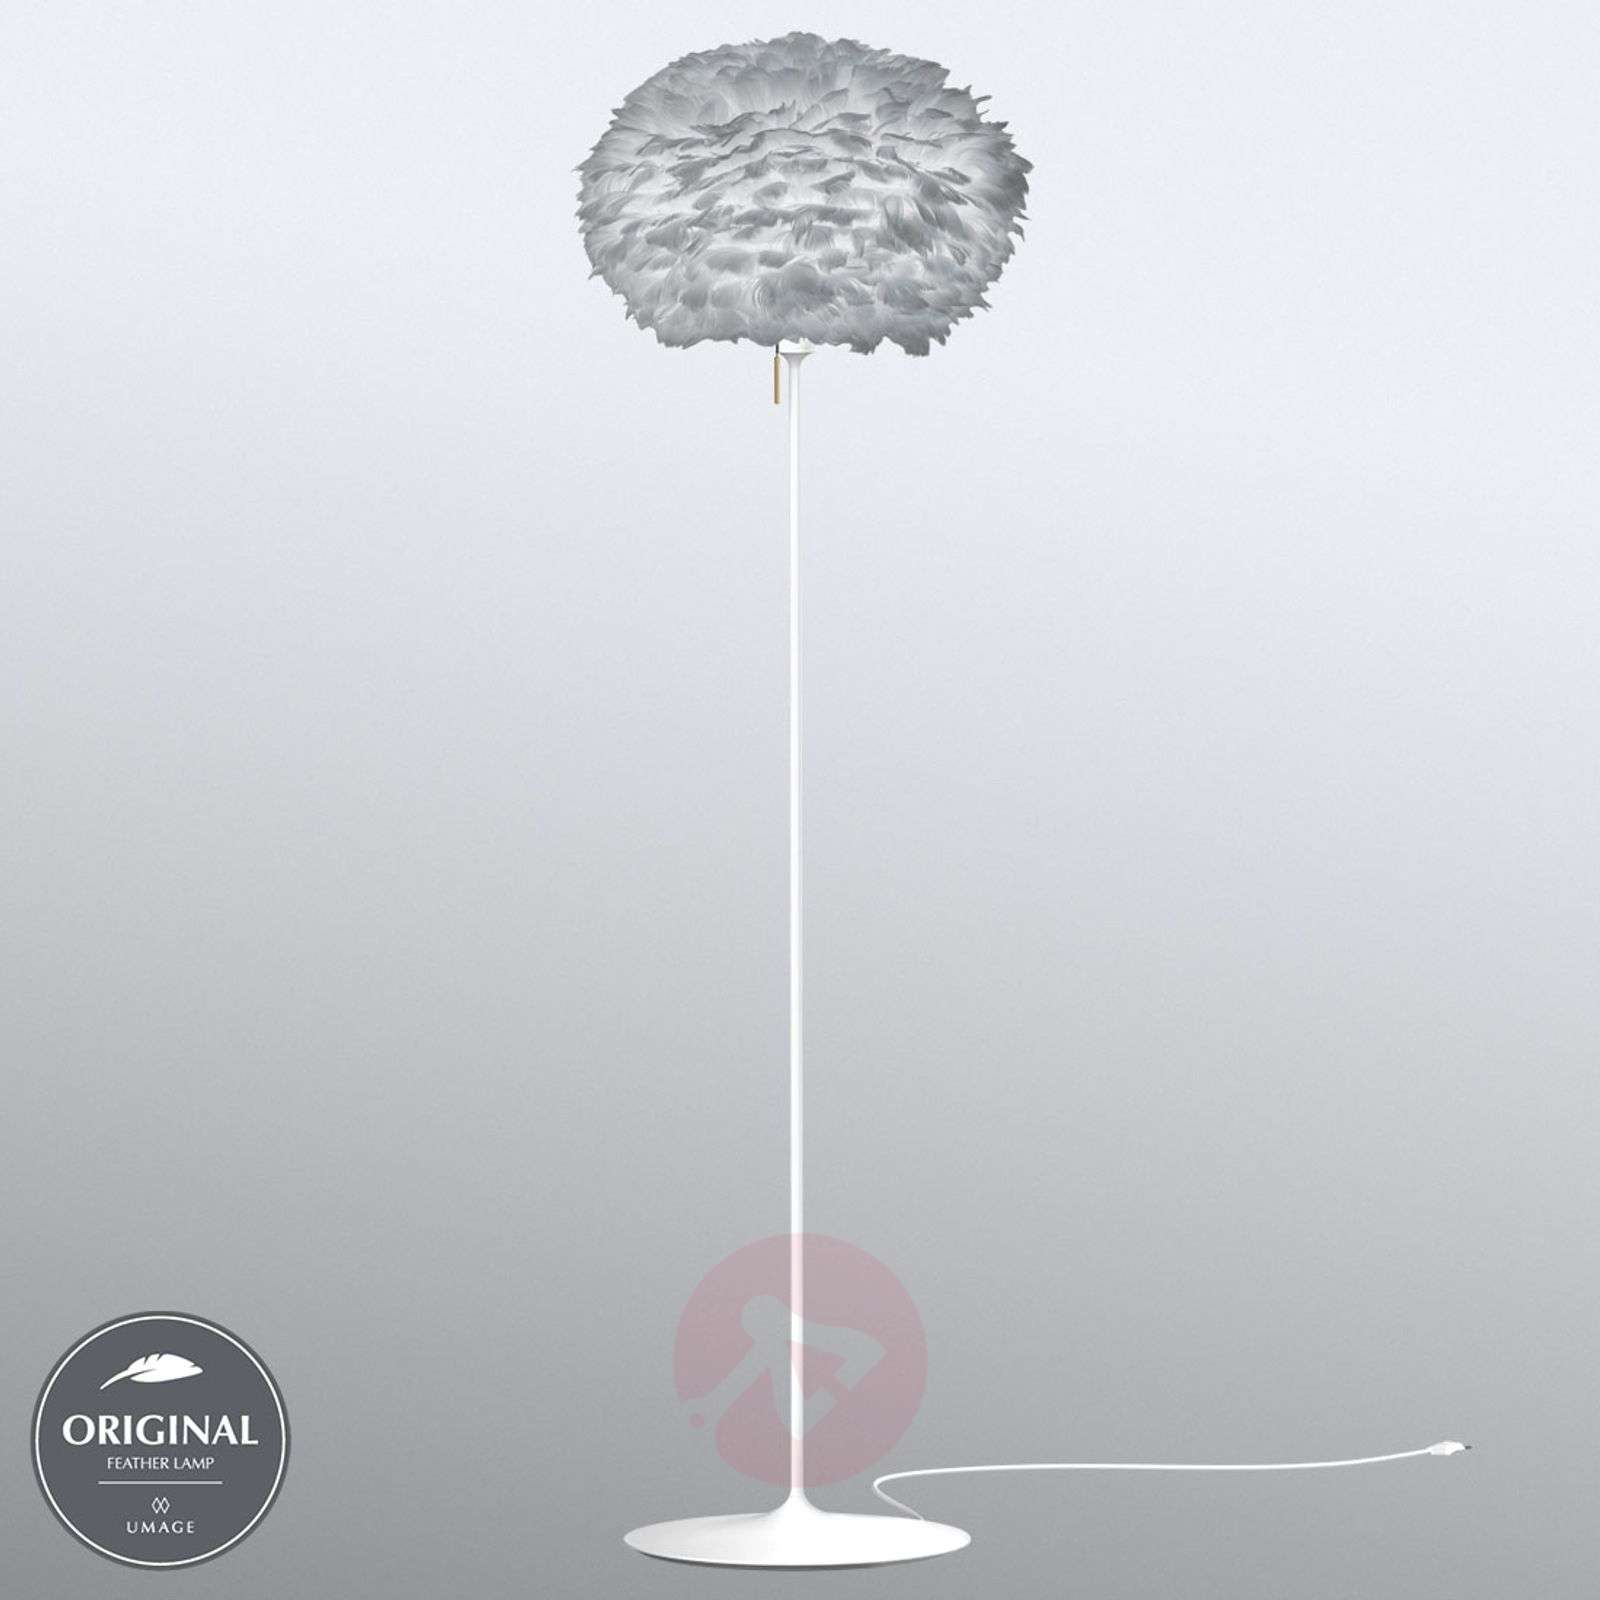 UMAGE Eos medium floor lamp in light grey-9521116-01